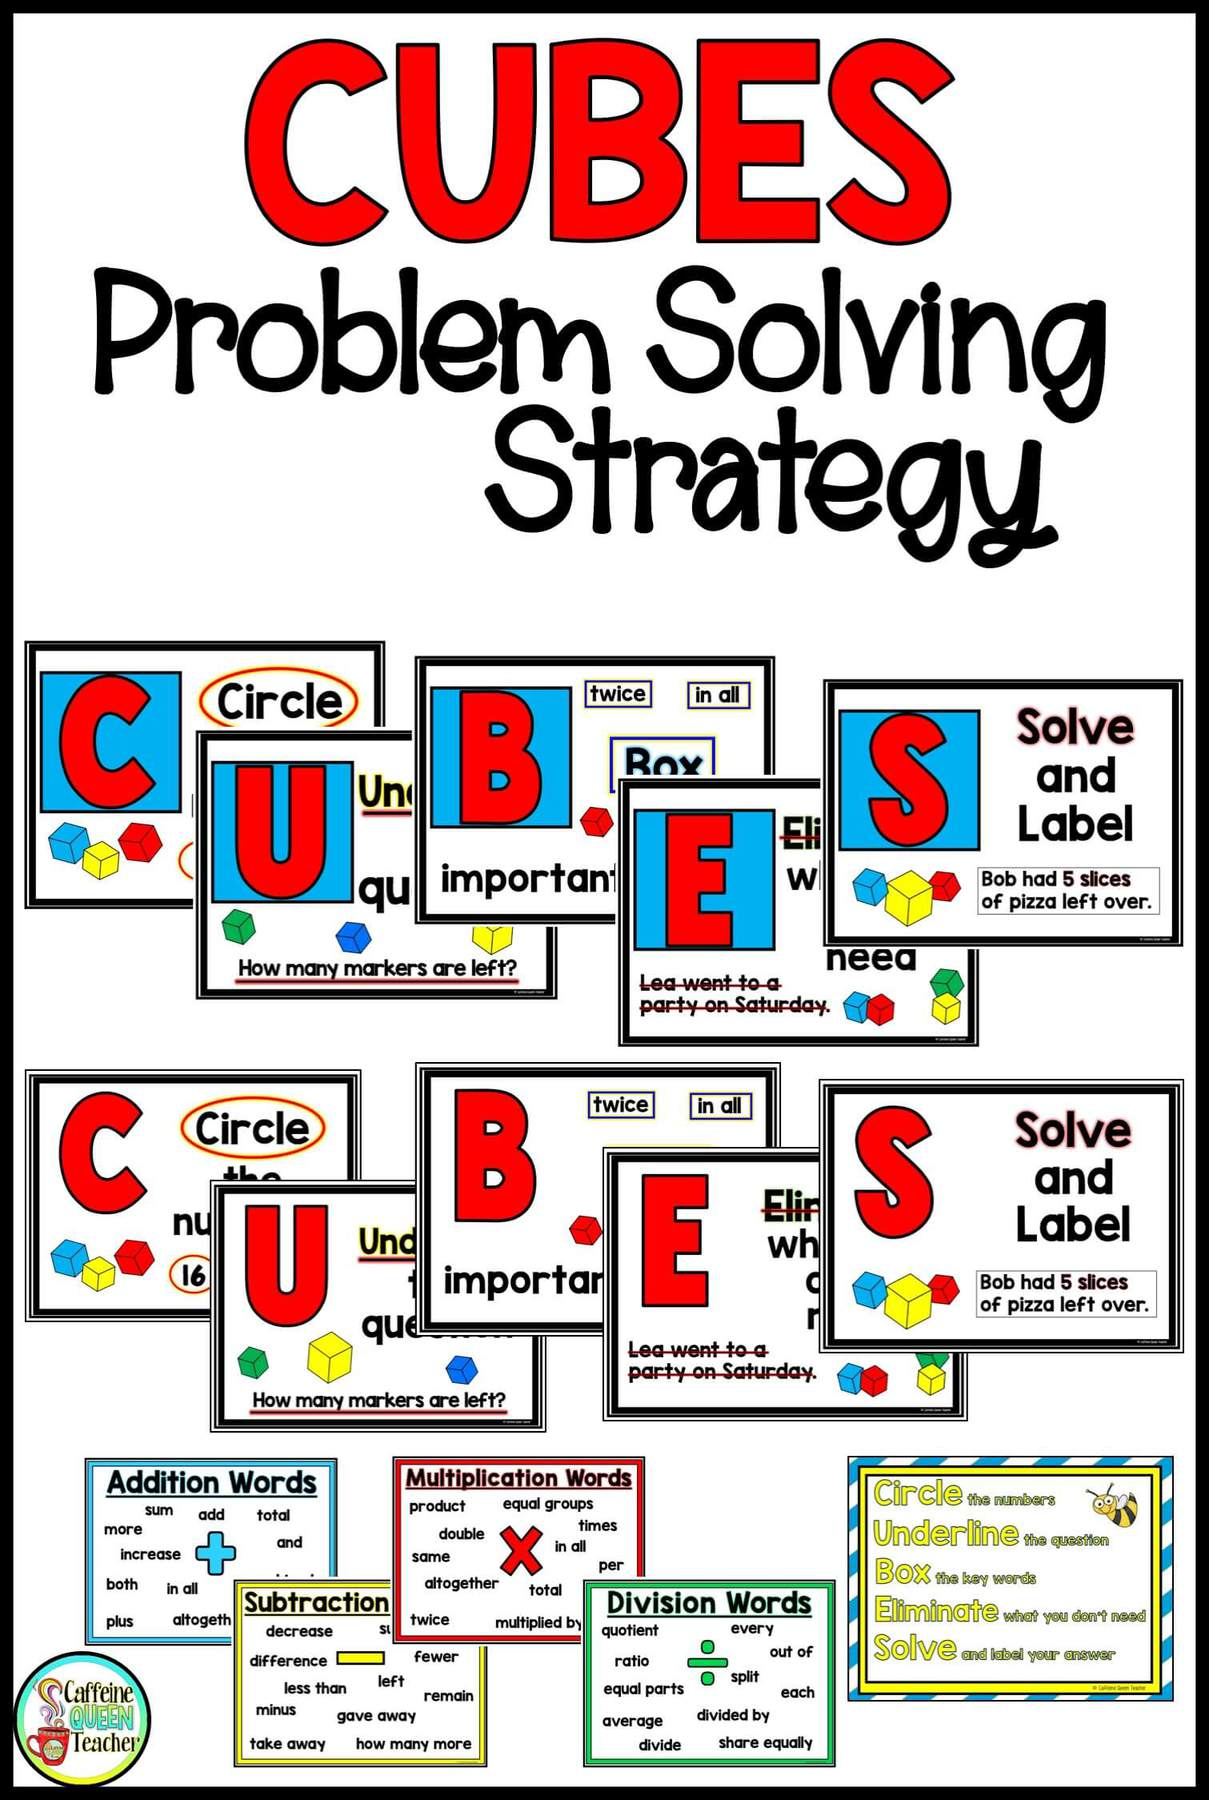 image regarding Cubes Math Strategy Printable identify 2-Digit Multiplication Created Less difficult! - Caffeine Queen Trainer